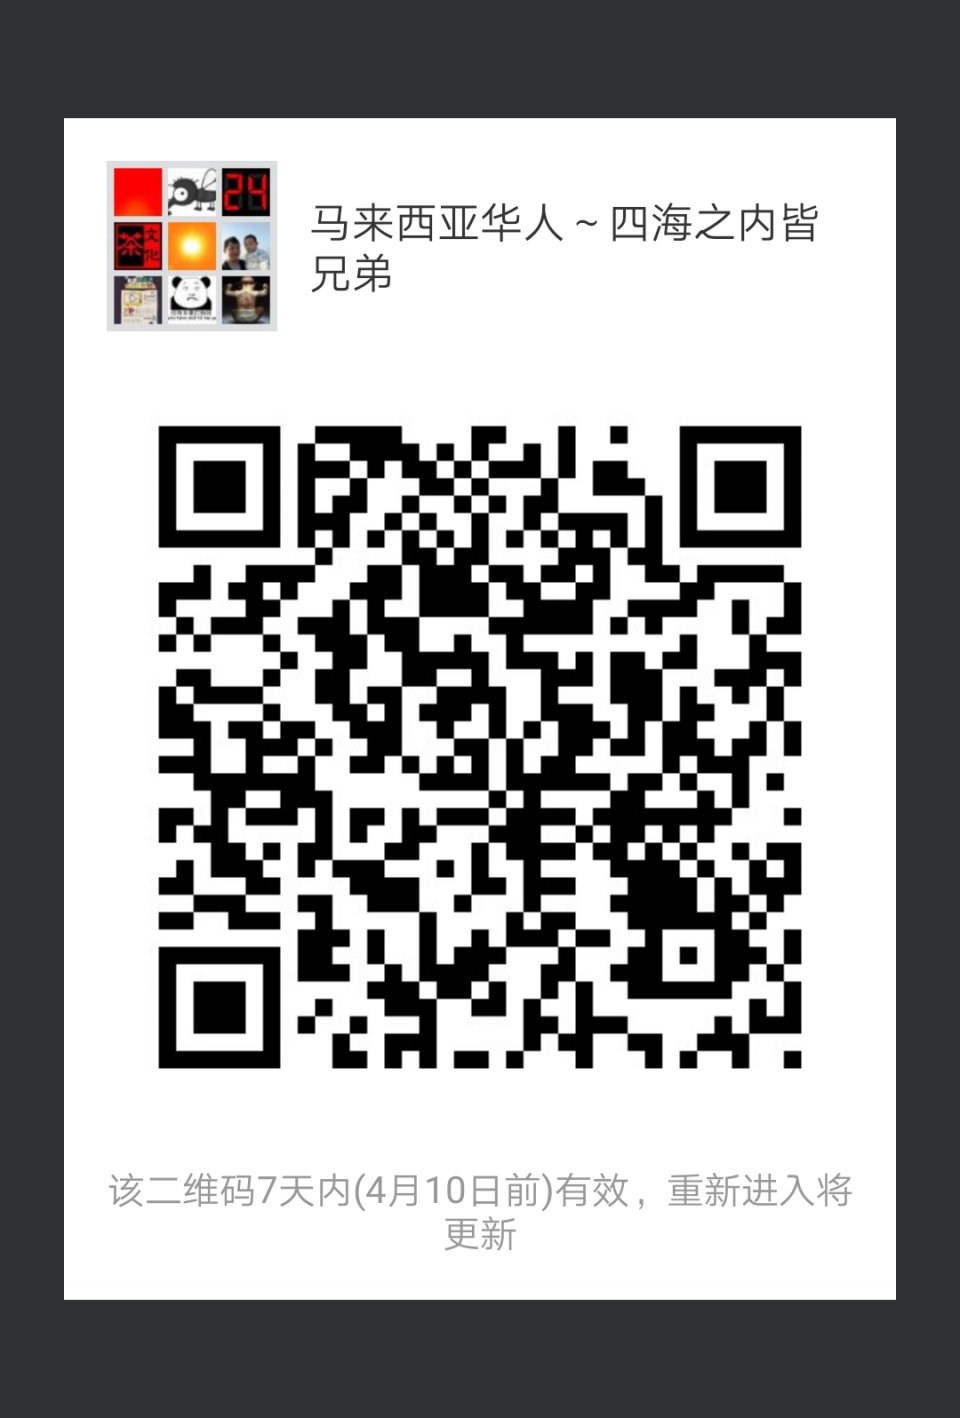 mmqrcode1522763734279_[B@cce2d6d.png